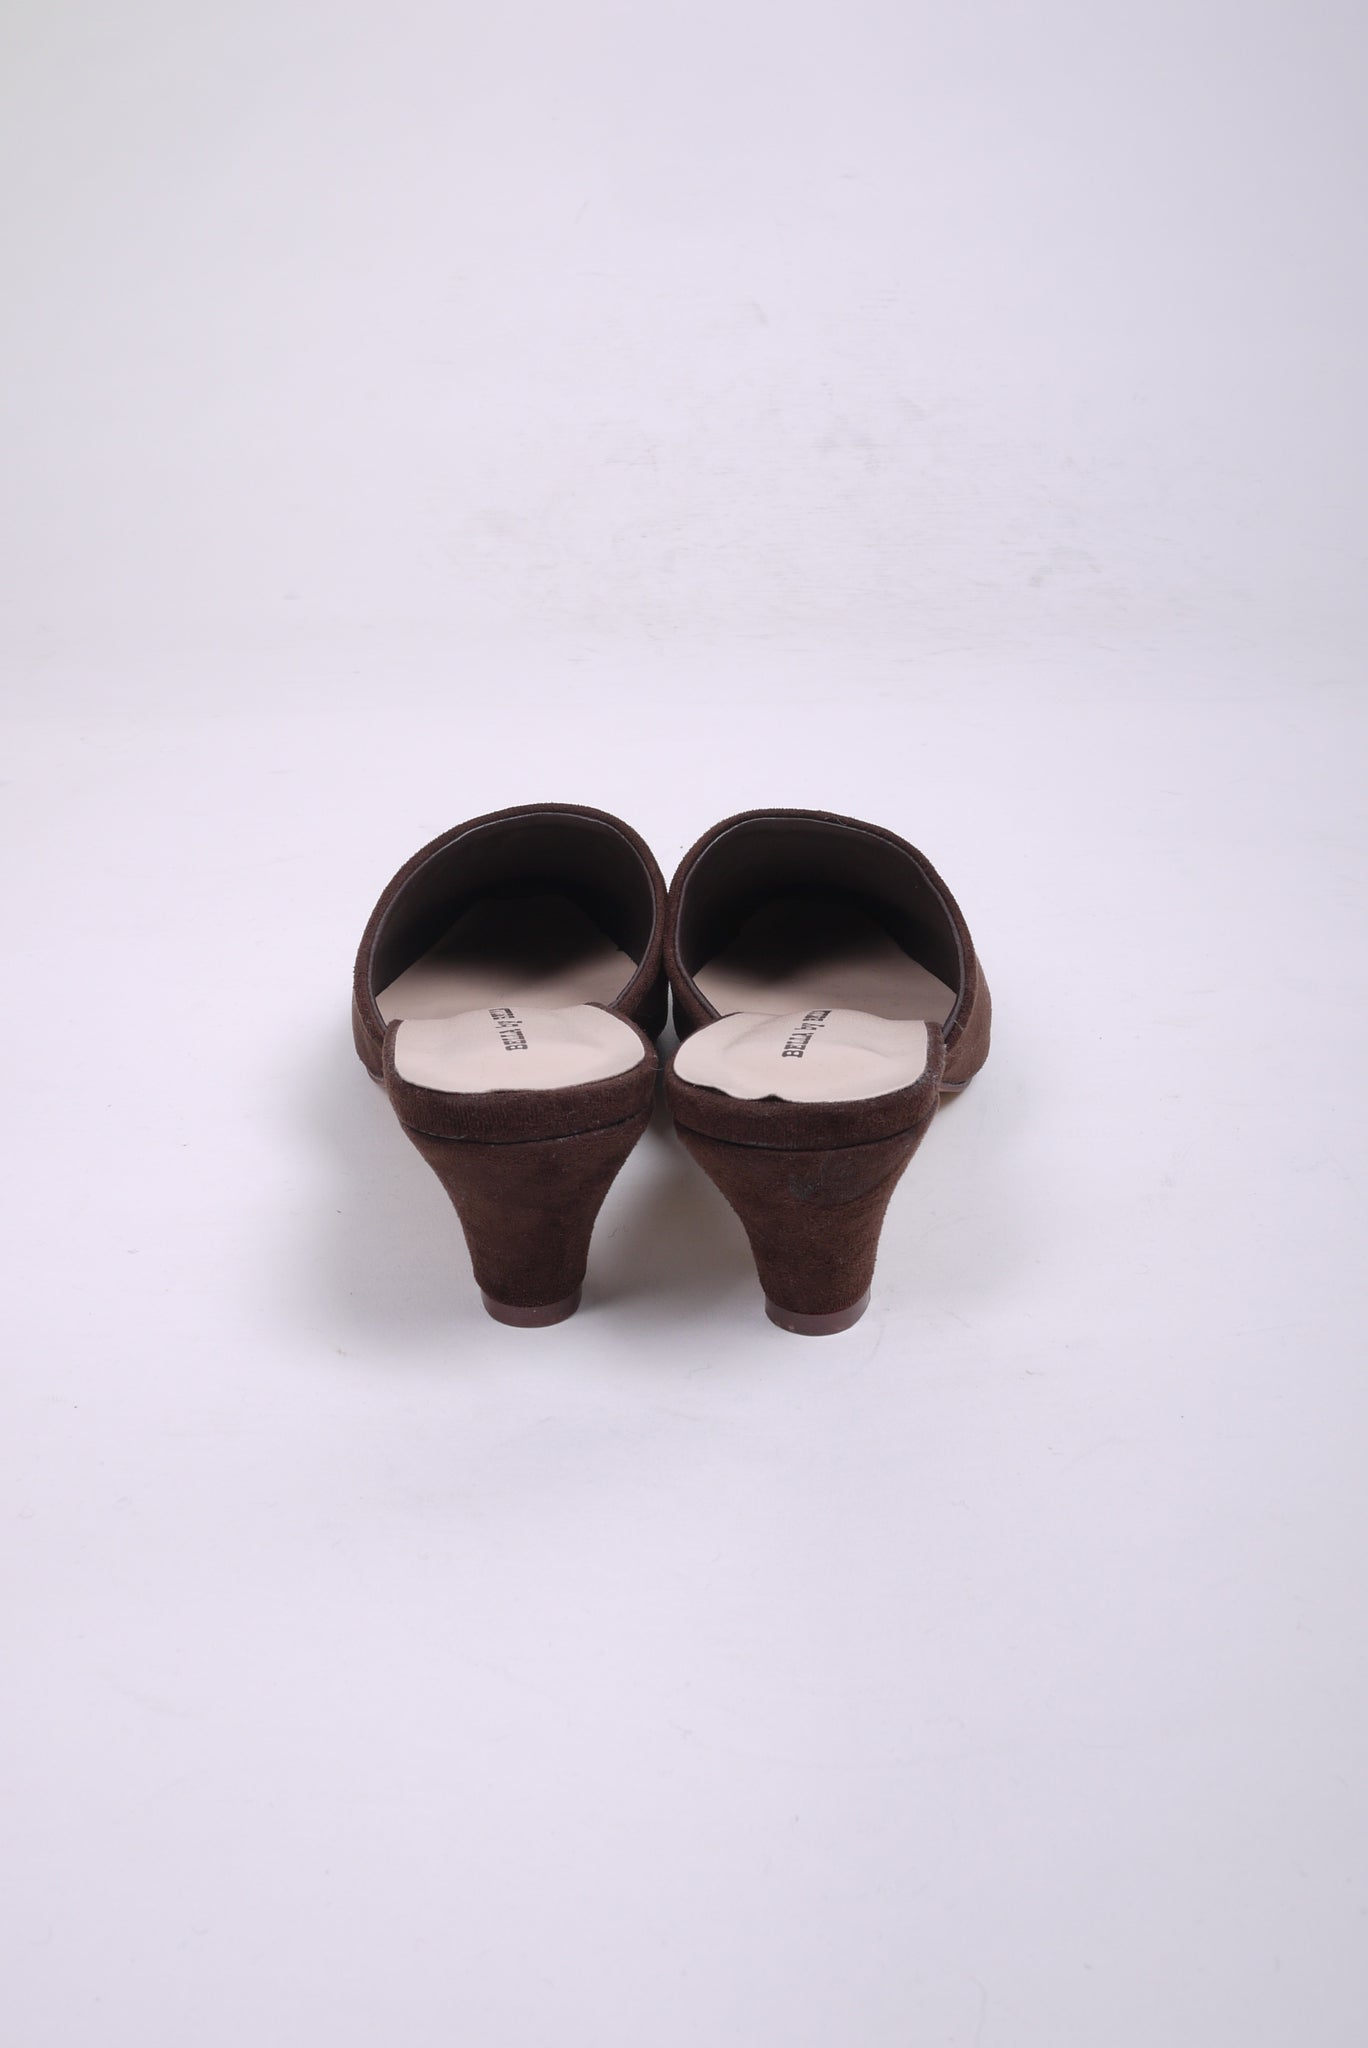 Sample Shoes 132 - whoami